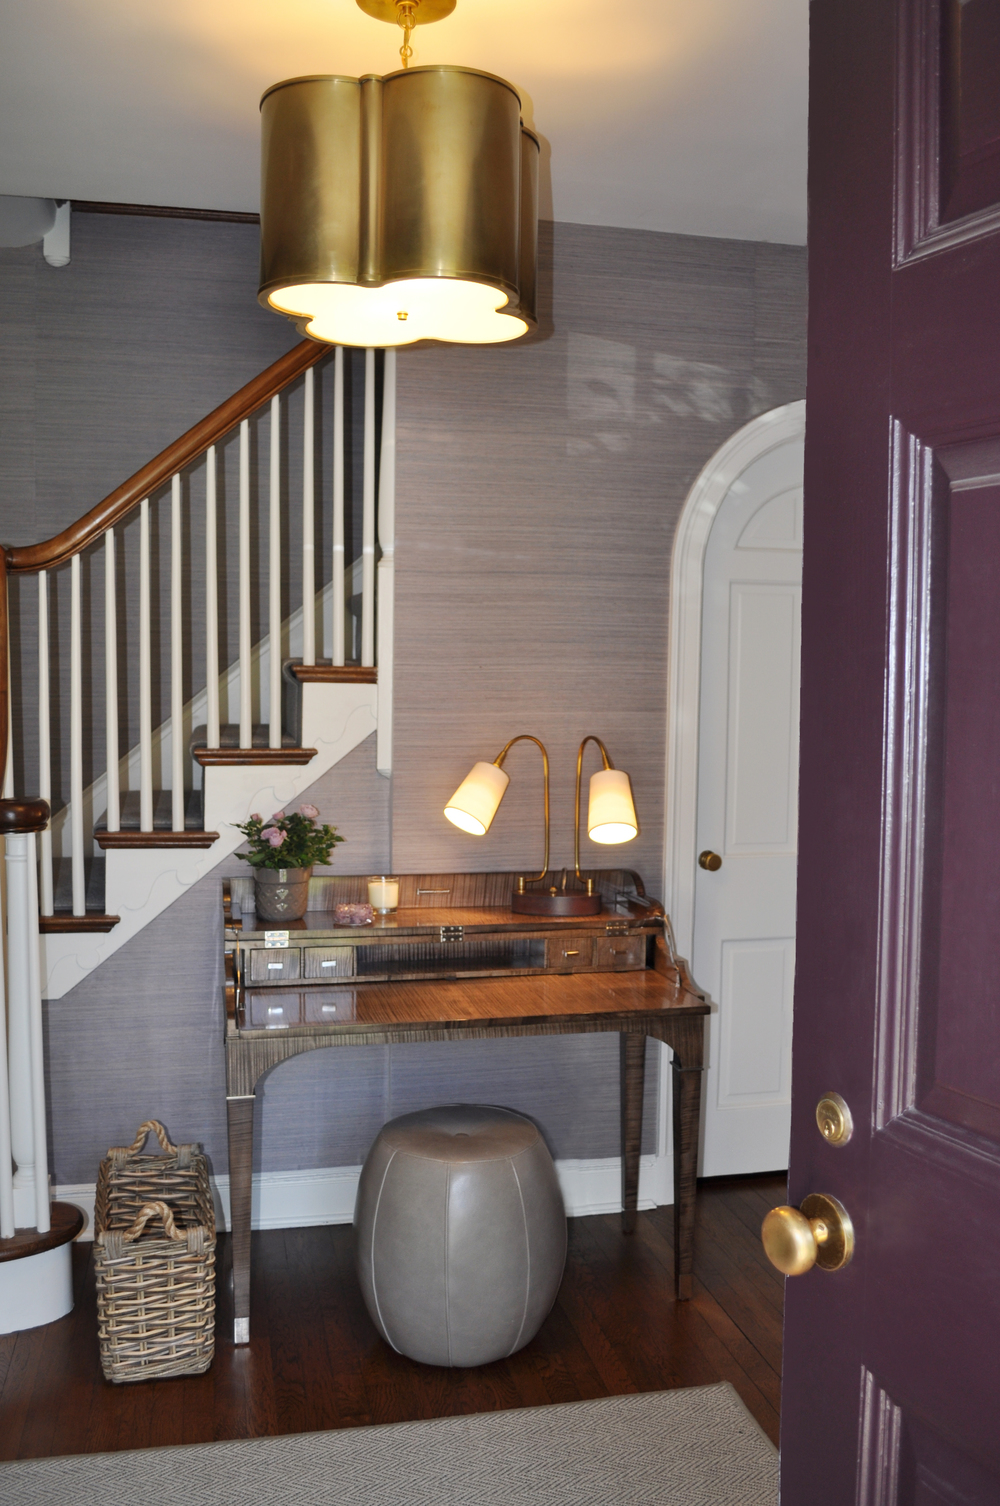 Foyer_Plum Front Door_Phillip Jeffries Hudson Haze Grasscloth Wallcovering_Entry Desk_Ballard Design Leather Pouf_Interior Designer Kim A Mitchell_KAM DESIGN_2016(1).jpg